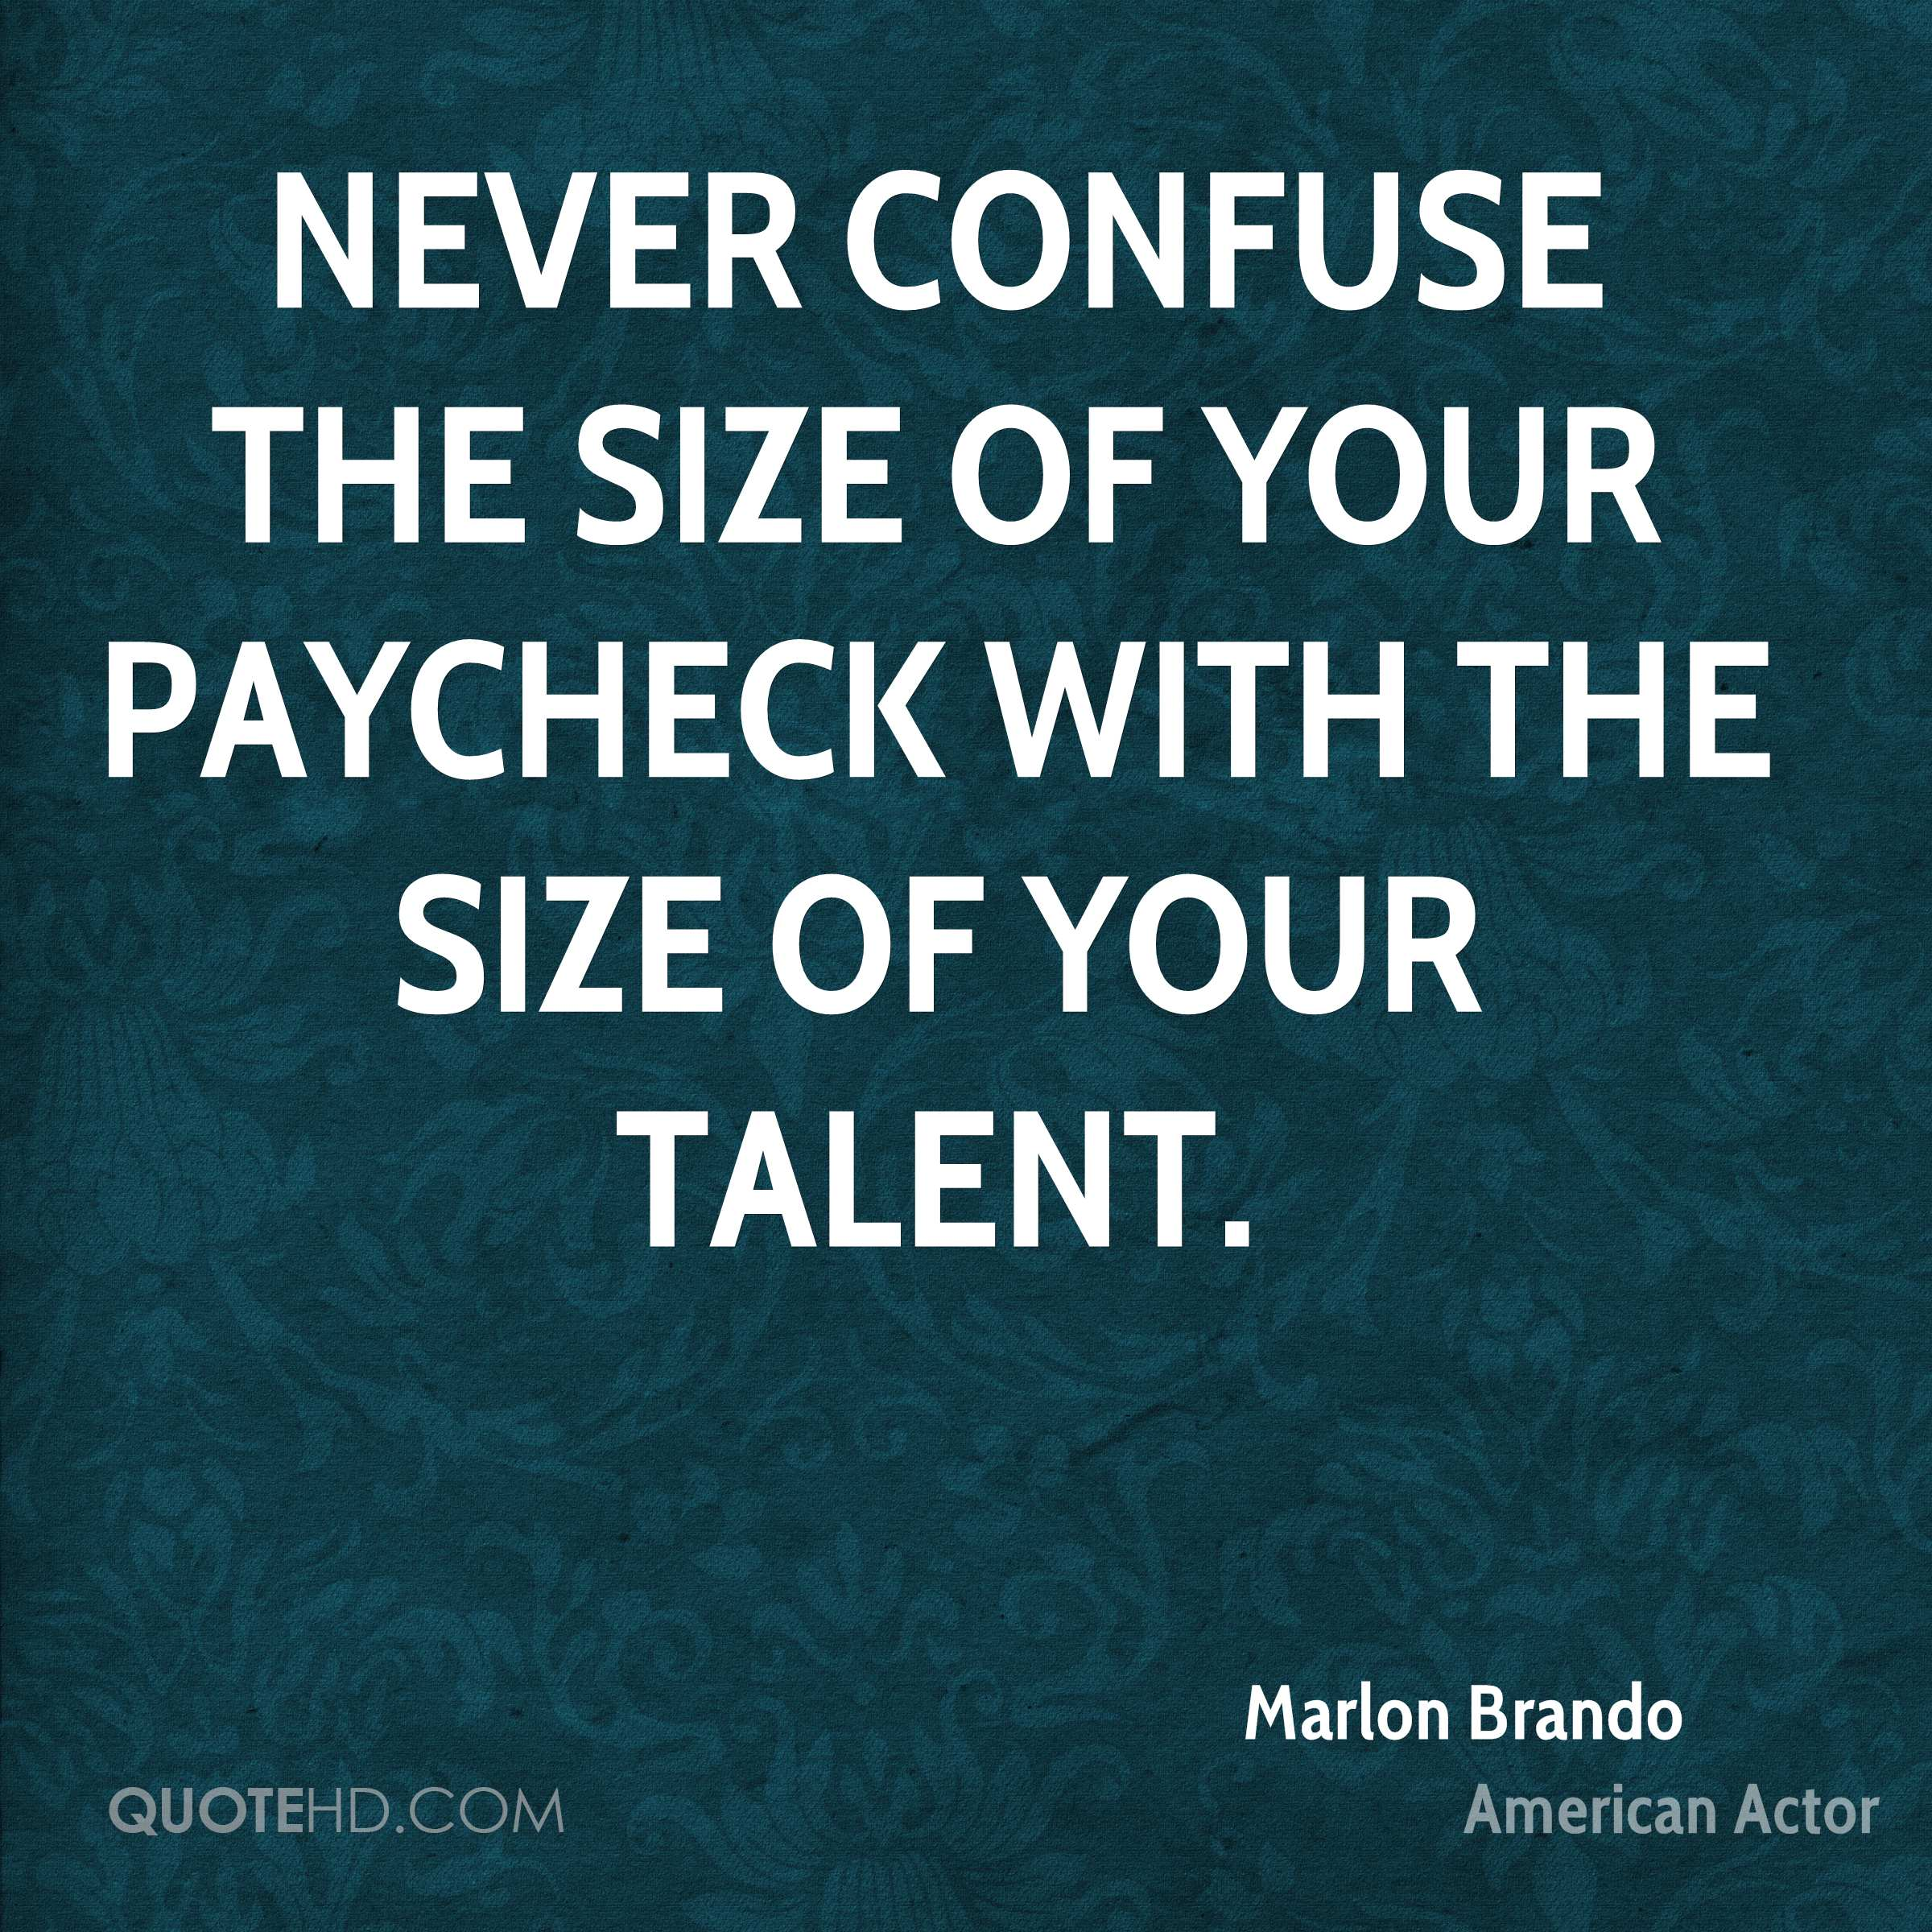 Never confuse the size of your paycheck with the size of your talent.